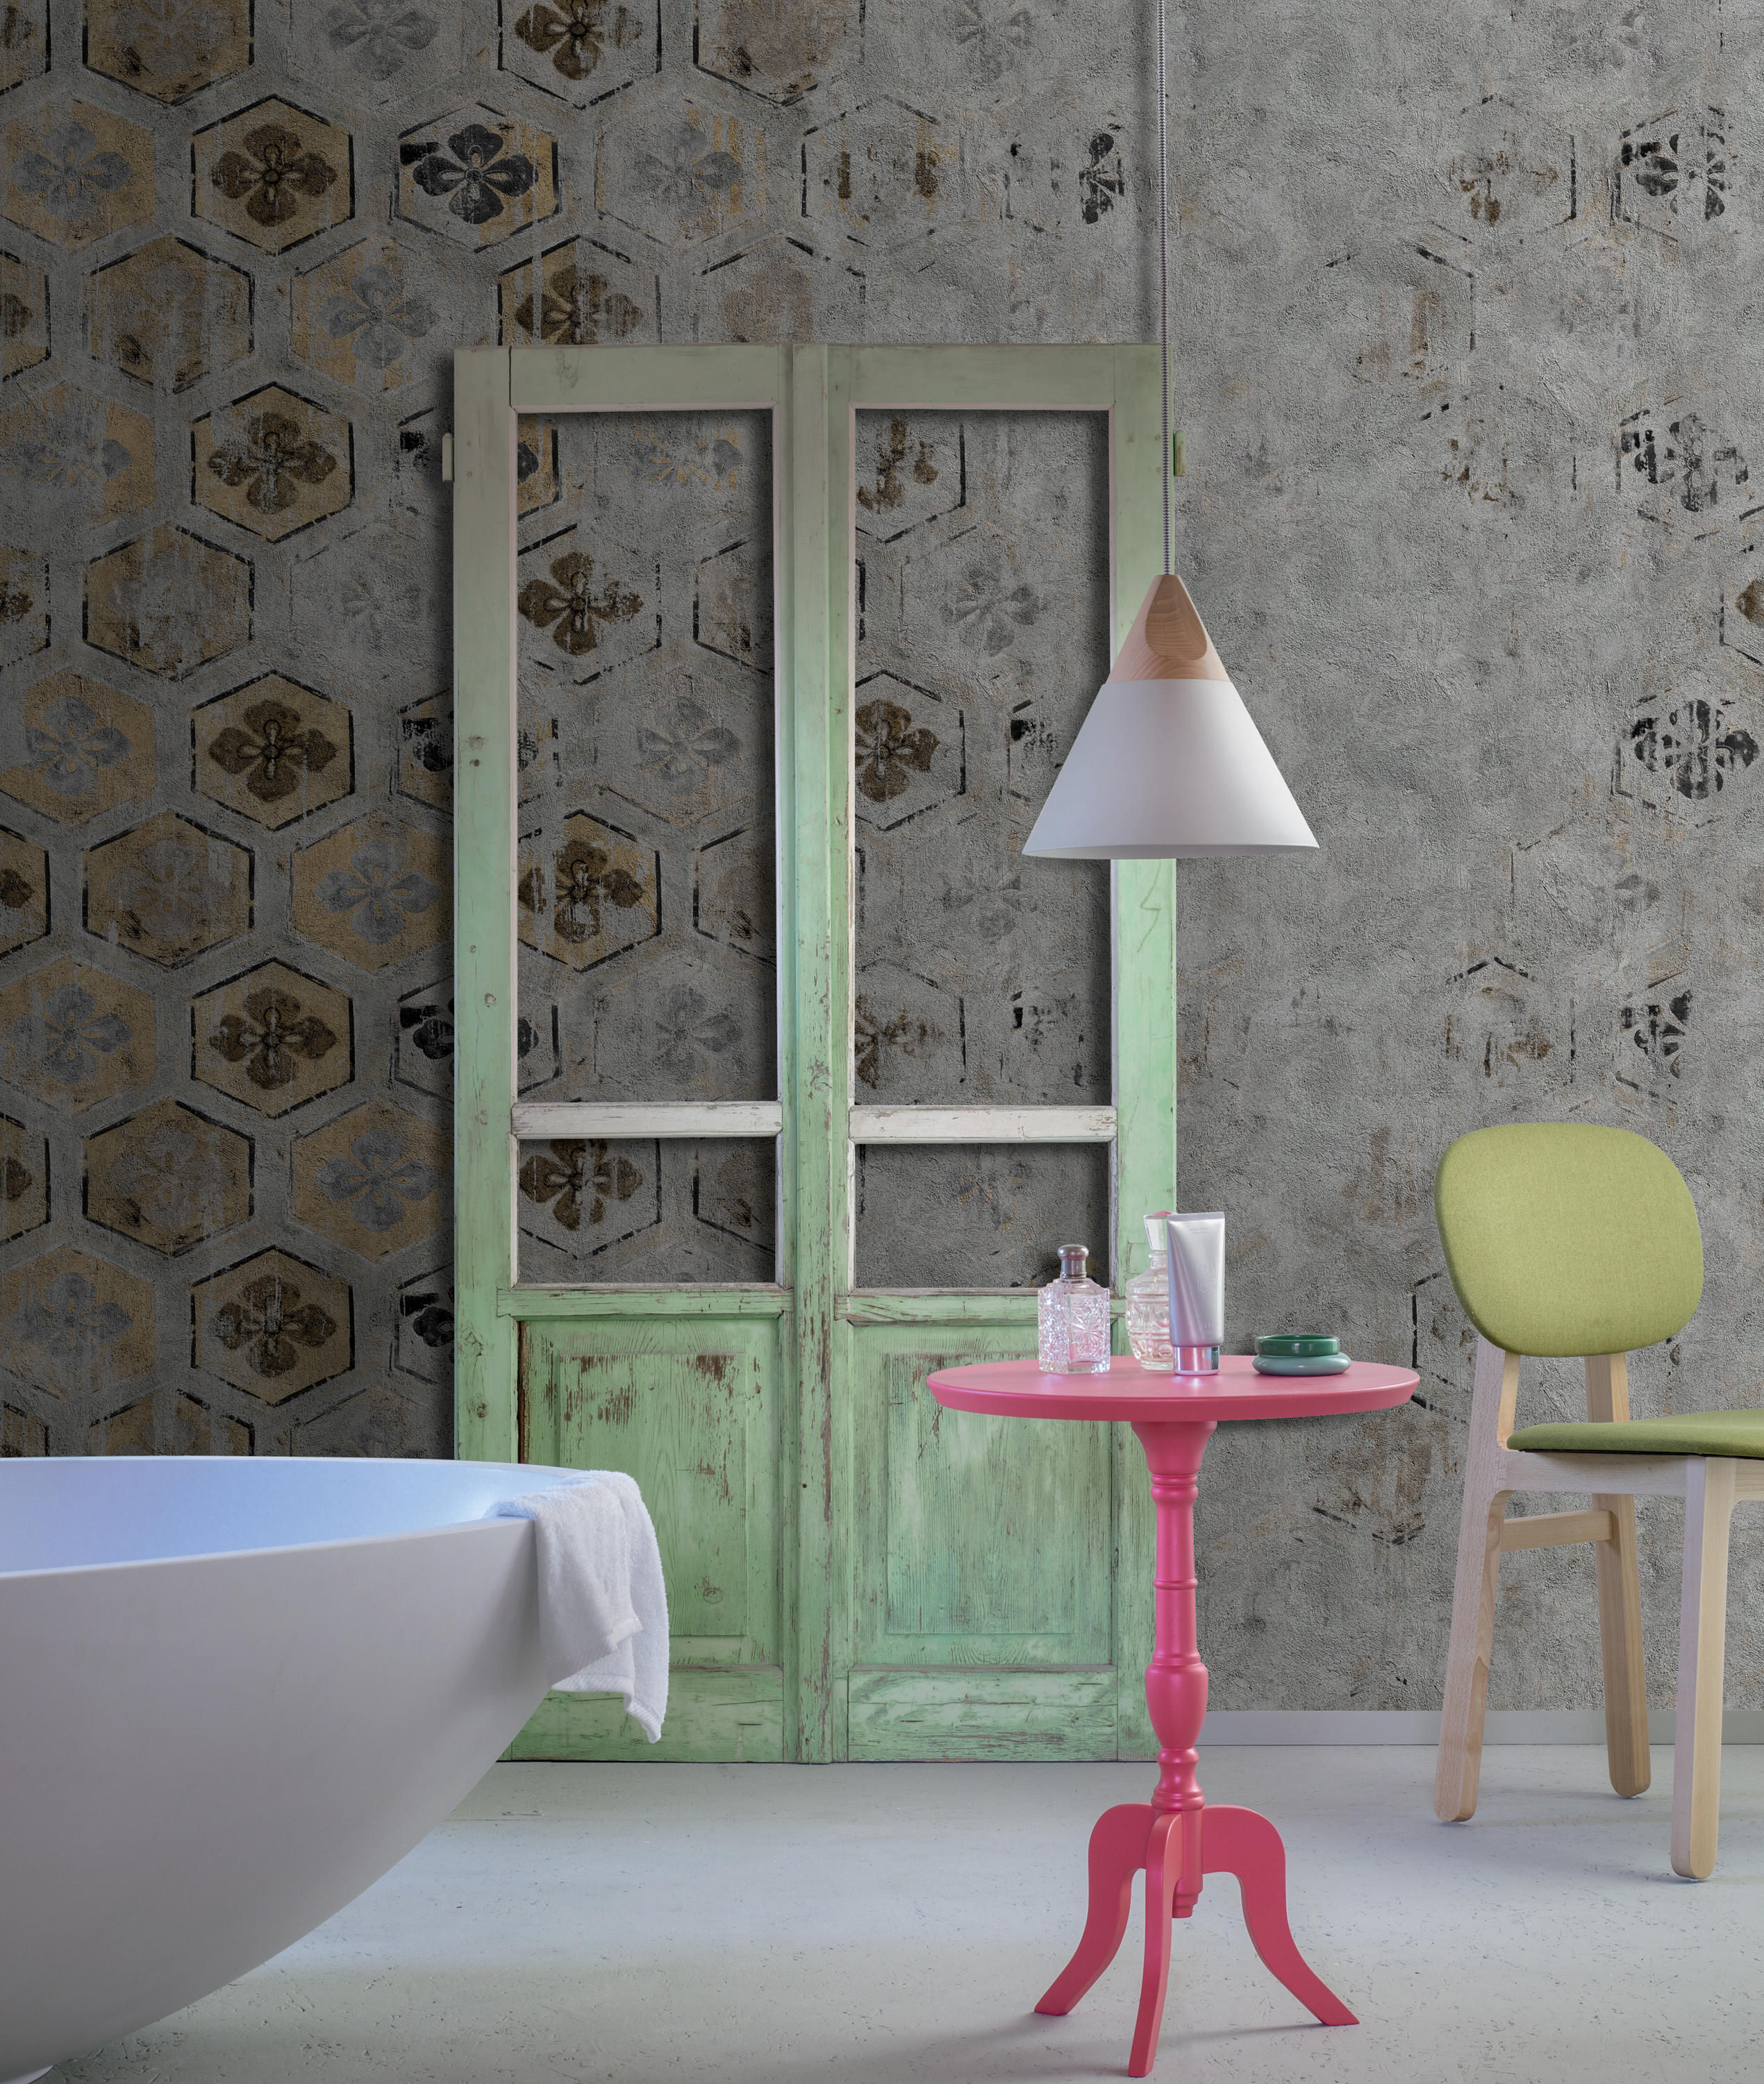 The Good Life Wall Coverings Wallpapers From Londonart